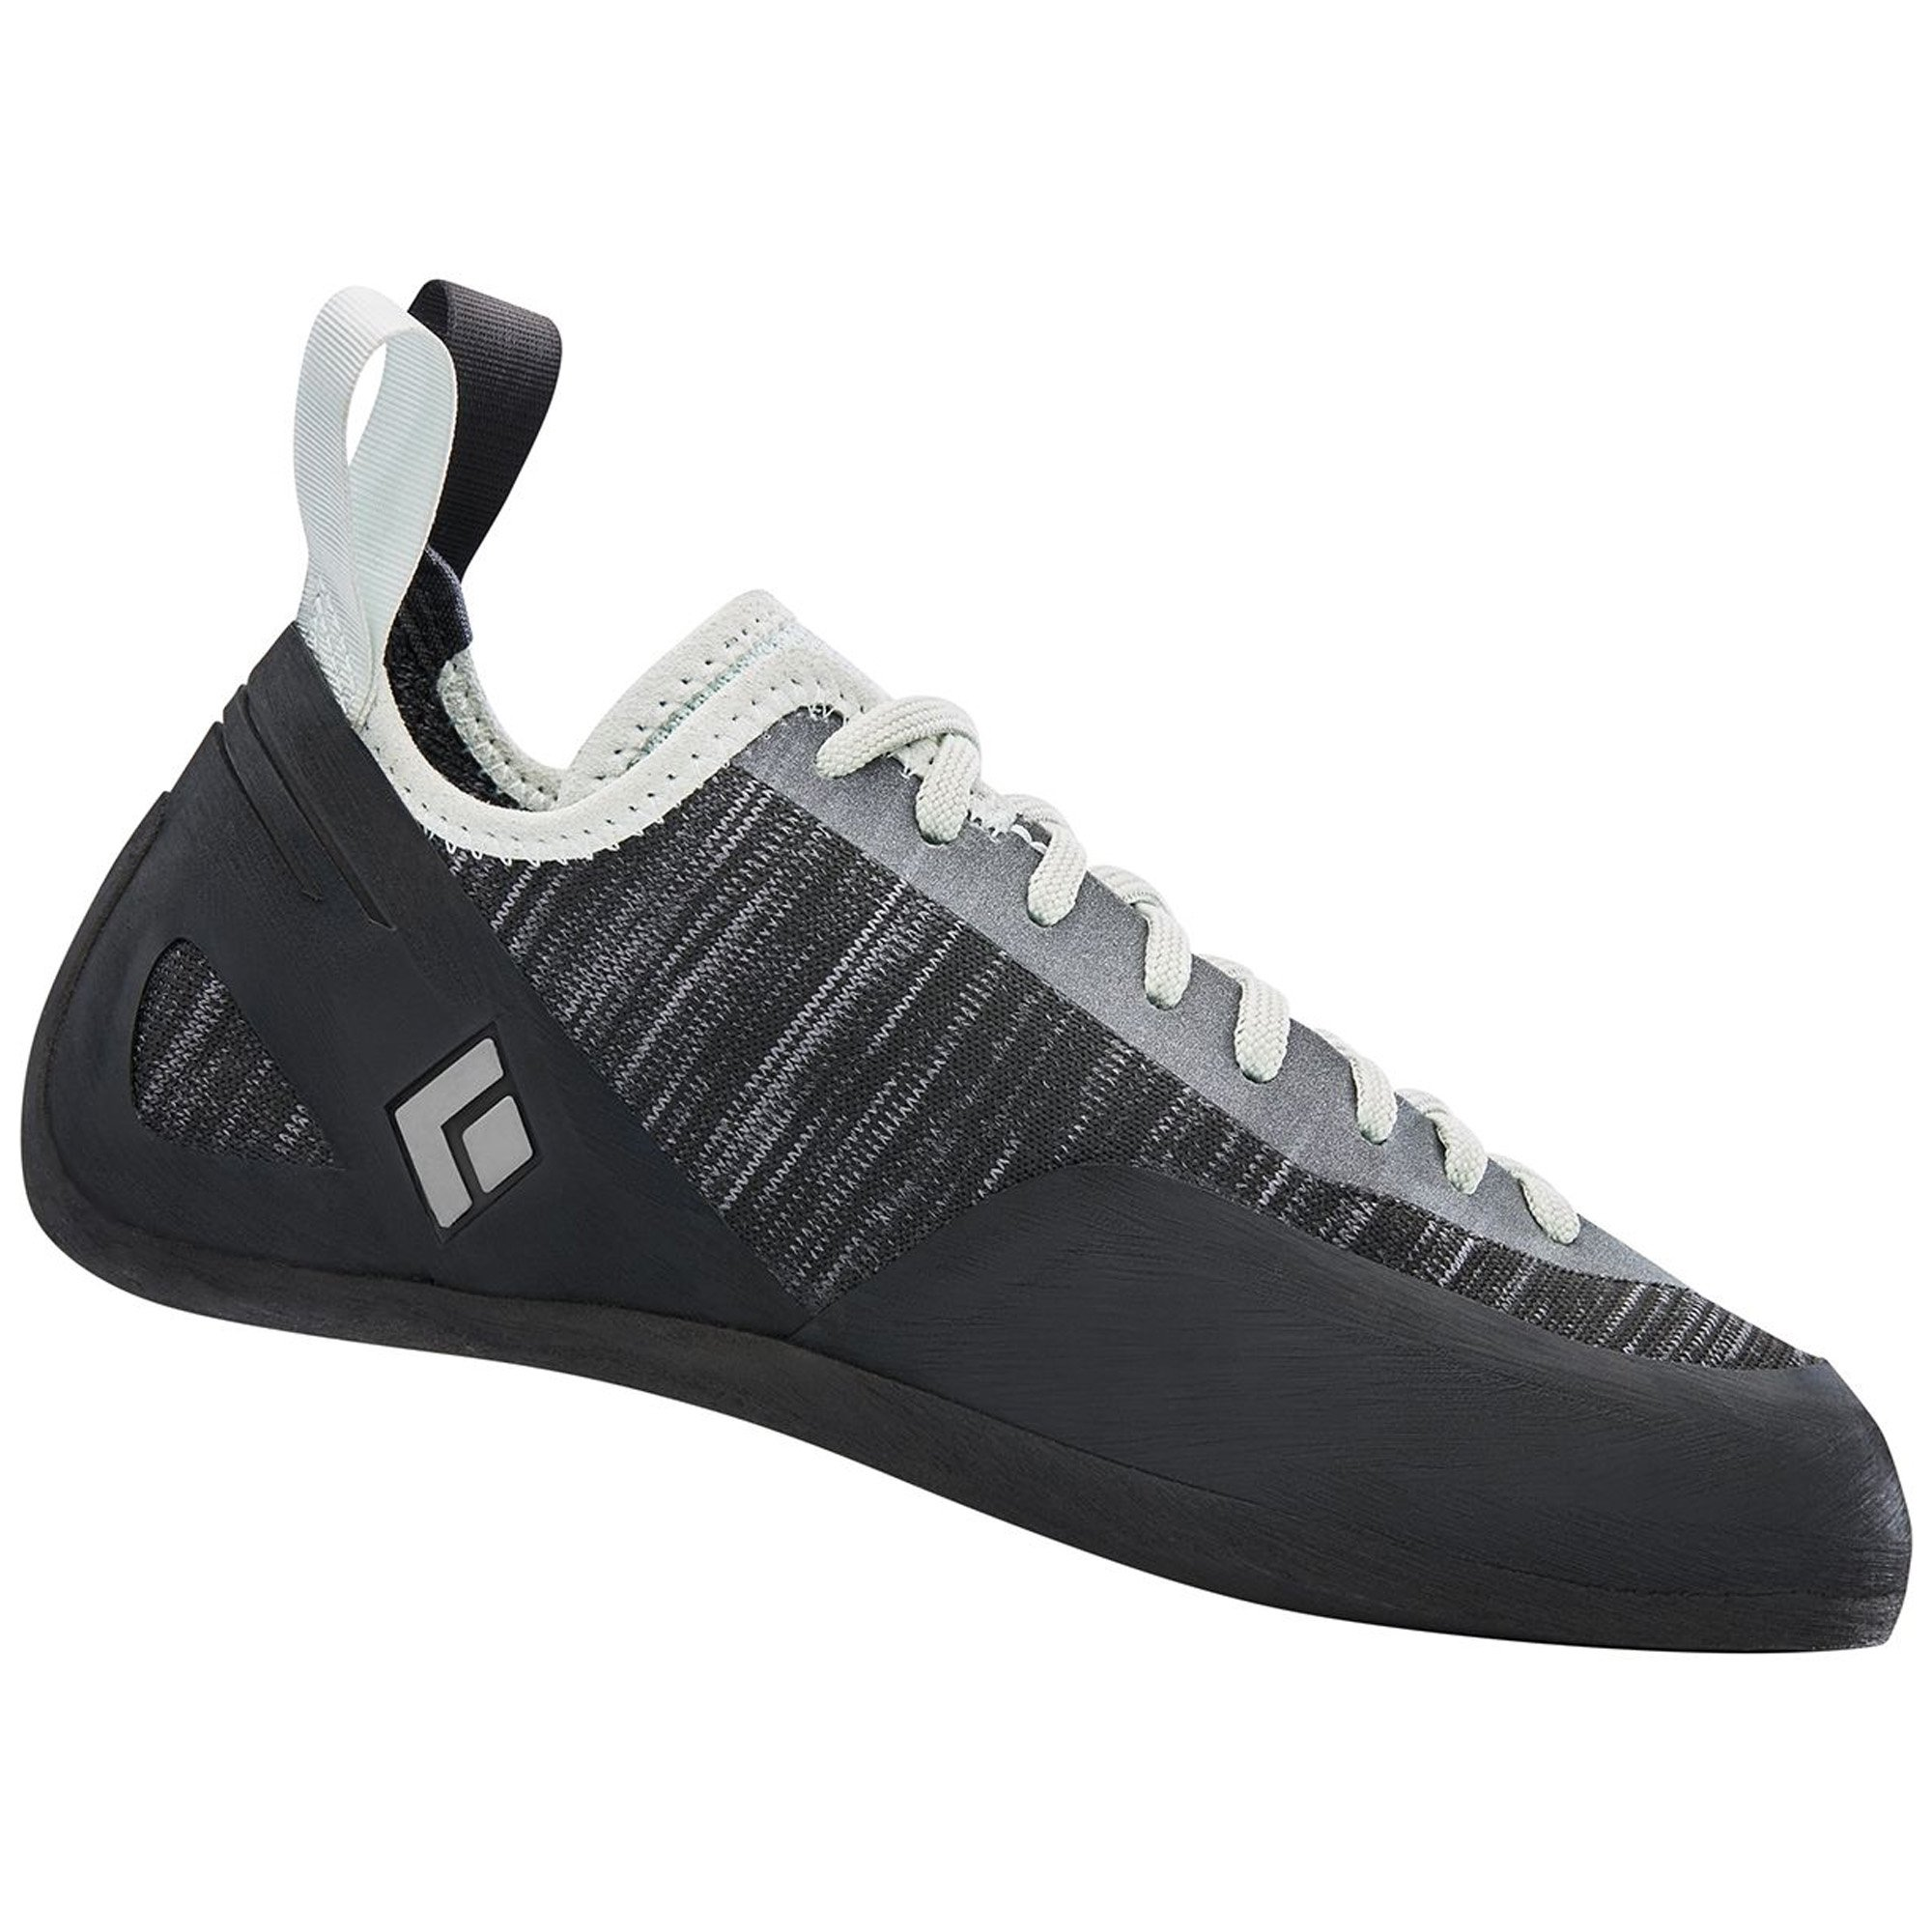 Black Diamond Momentum Lace Climbing Shoe - Women's Ash 5